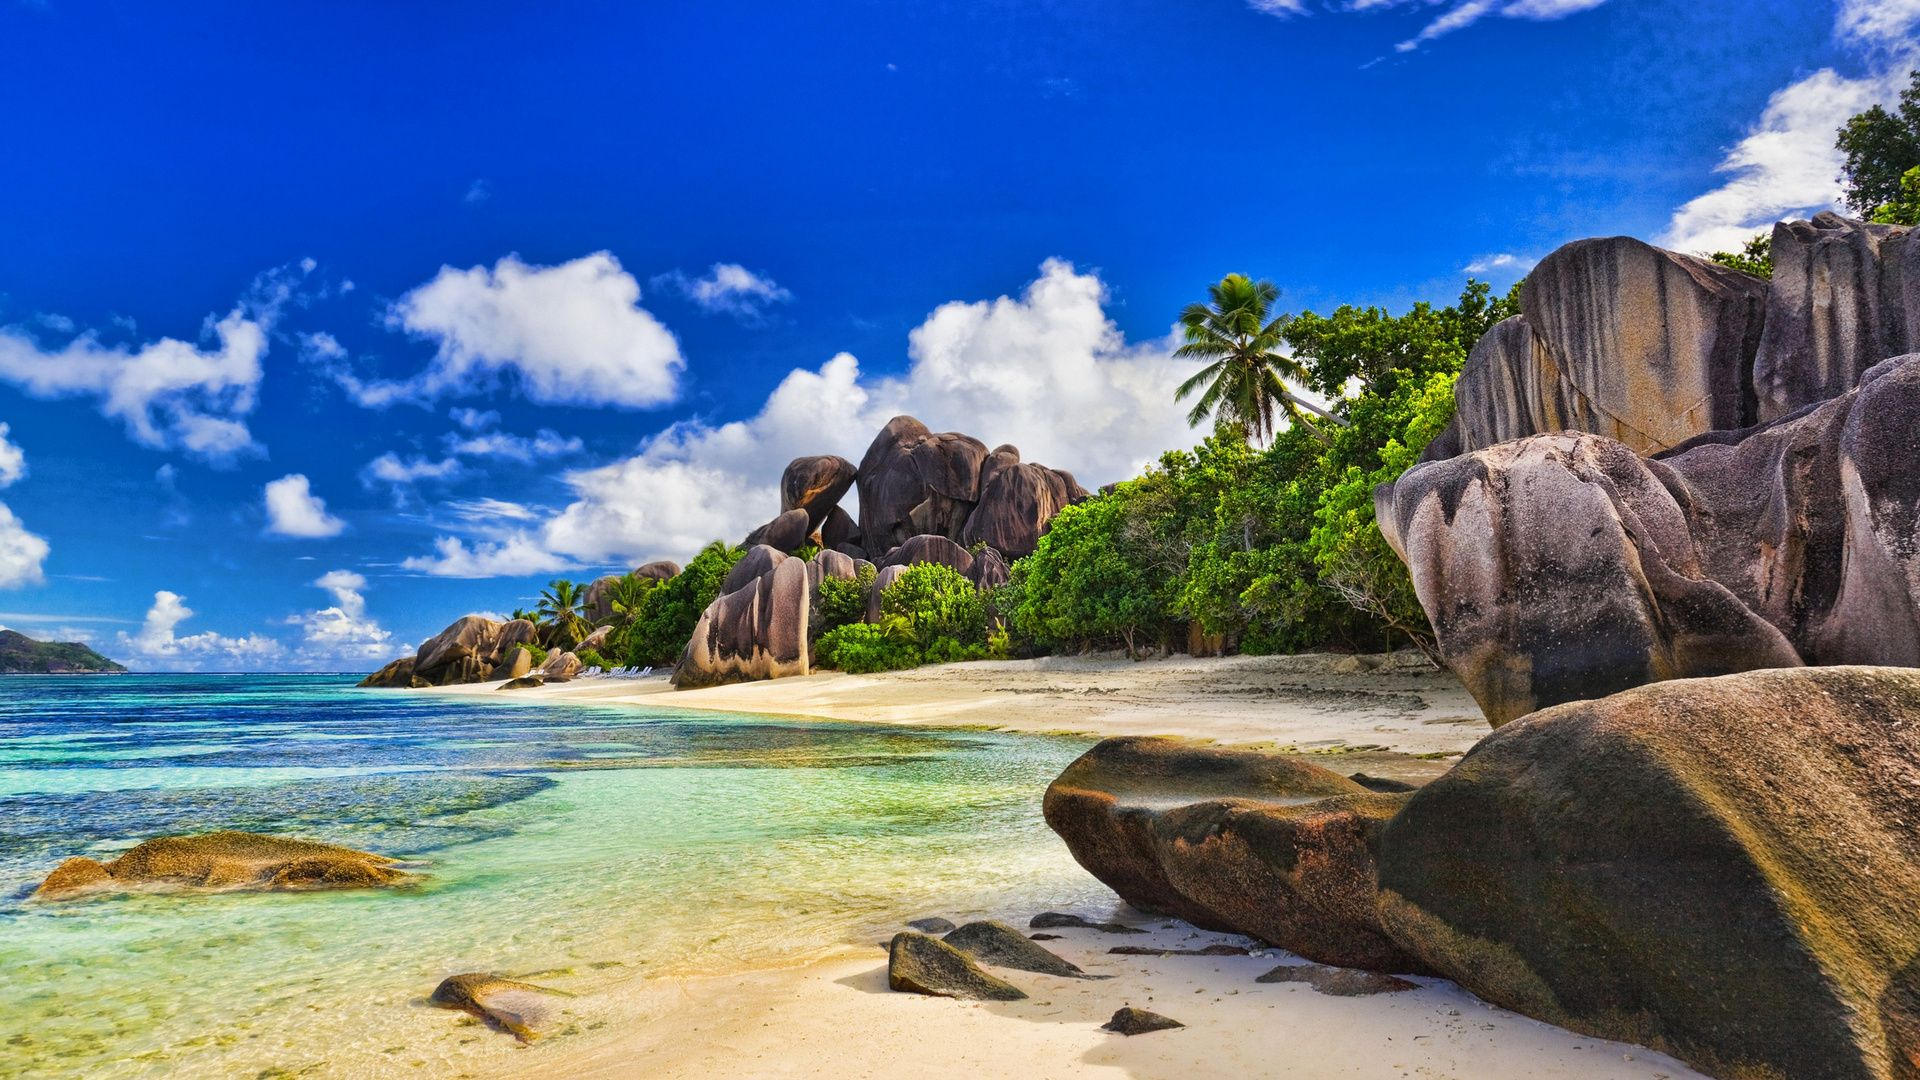 Exotic download free wallpapers for pc in hd